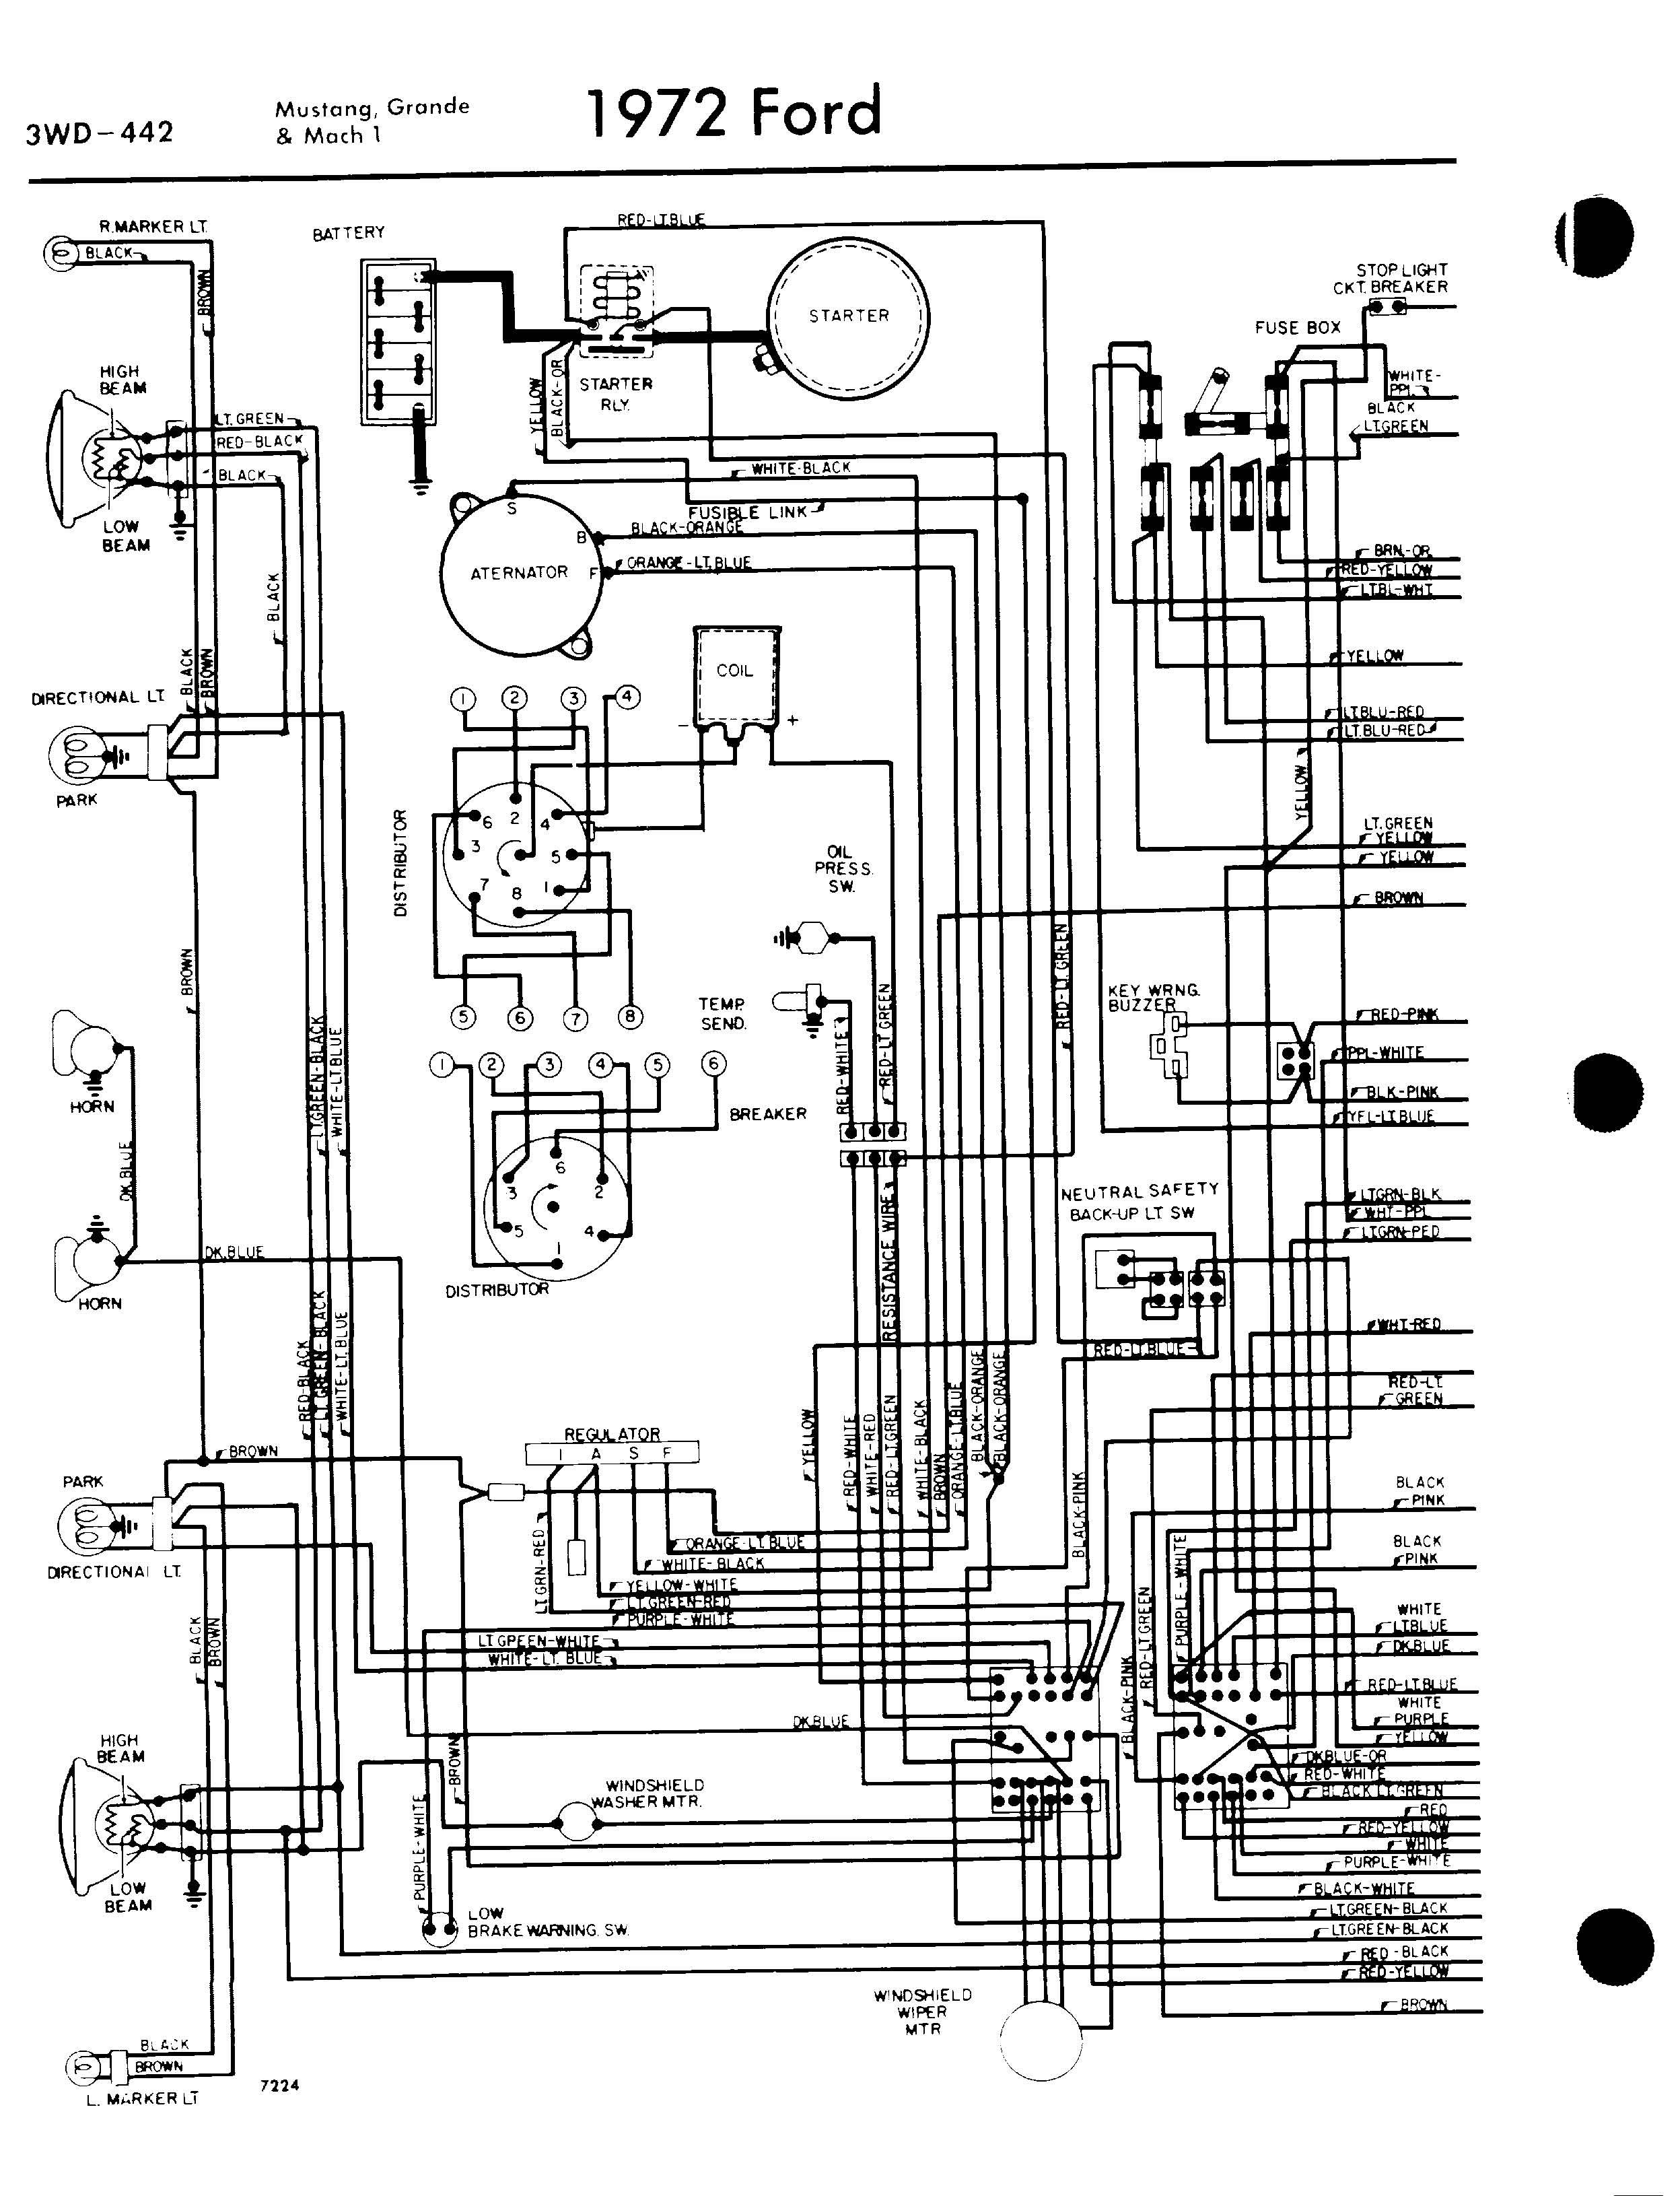 71af7a58e095e6a7716b32f1b23e8bd2 72 mach1 alternator wire harness diagram yahoo search results 1970 ford mustang wiring diagram at mifinder.co